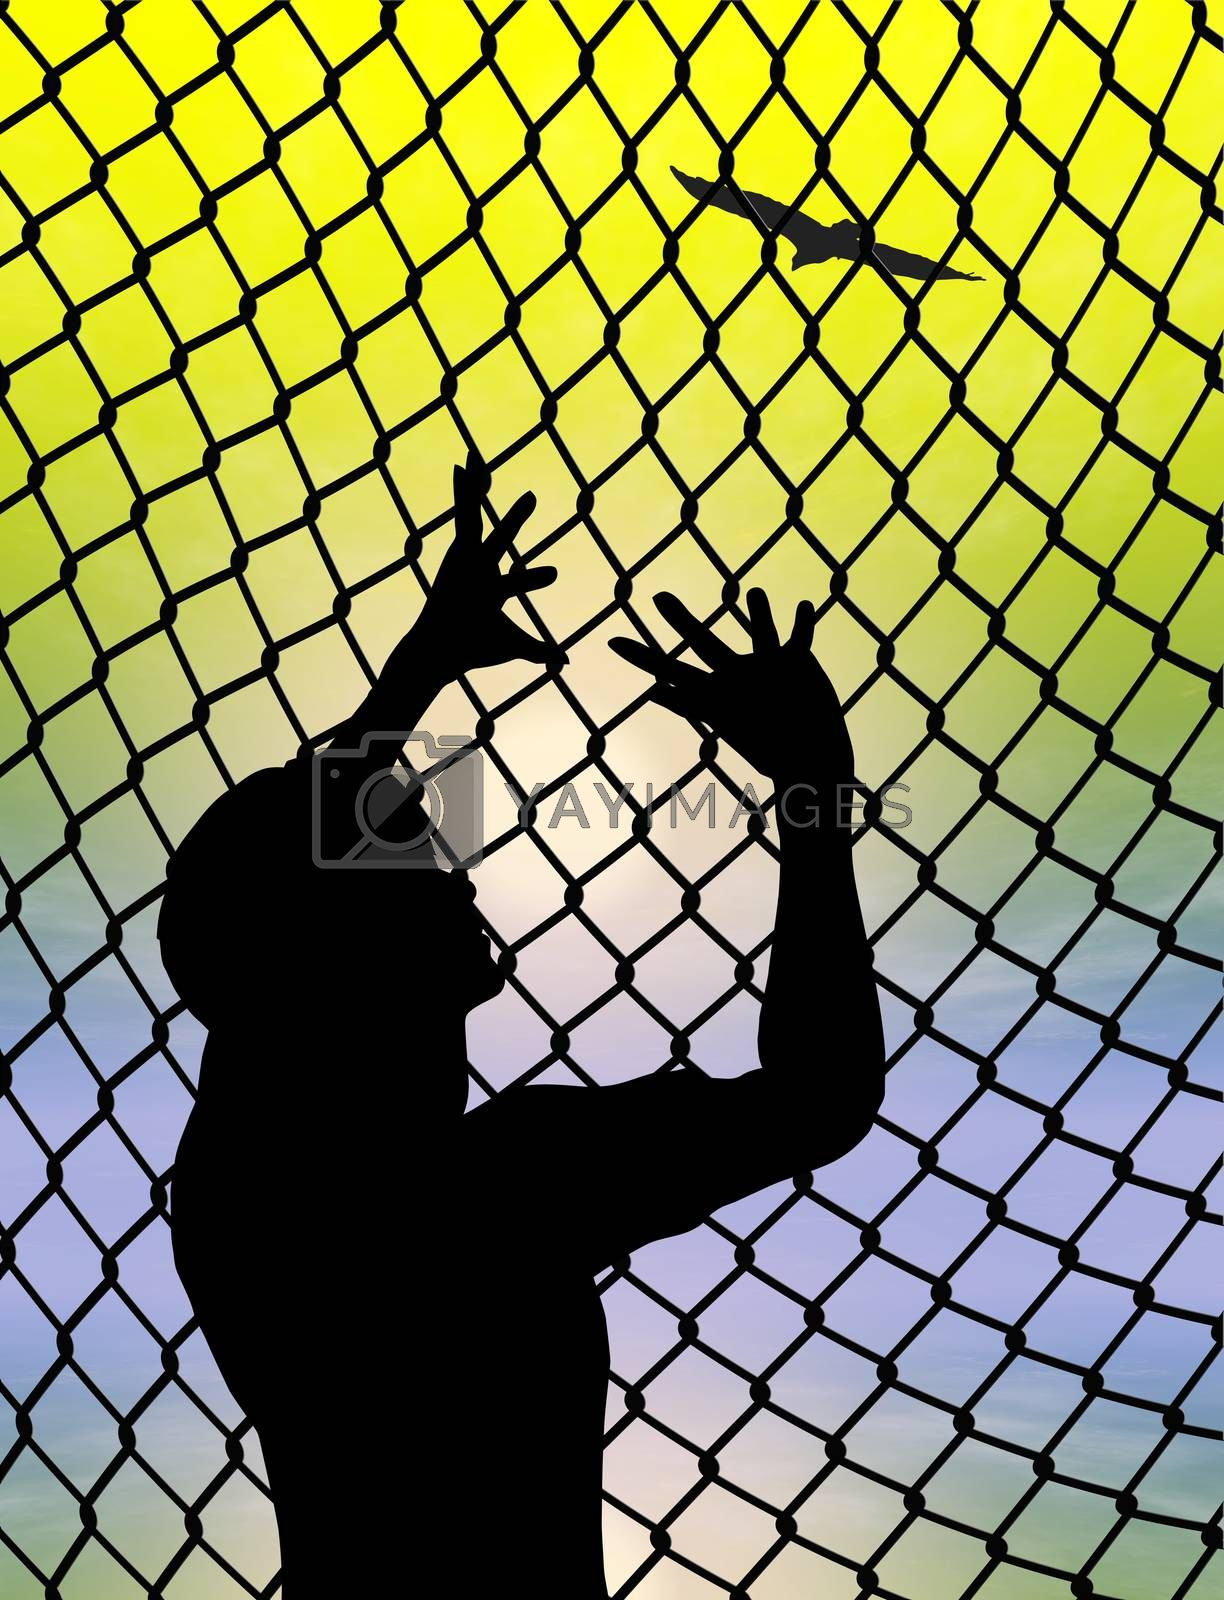 Eagle escaping from cage as symbol and metaphor for human freedom